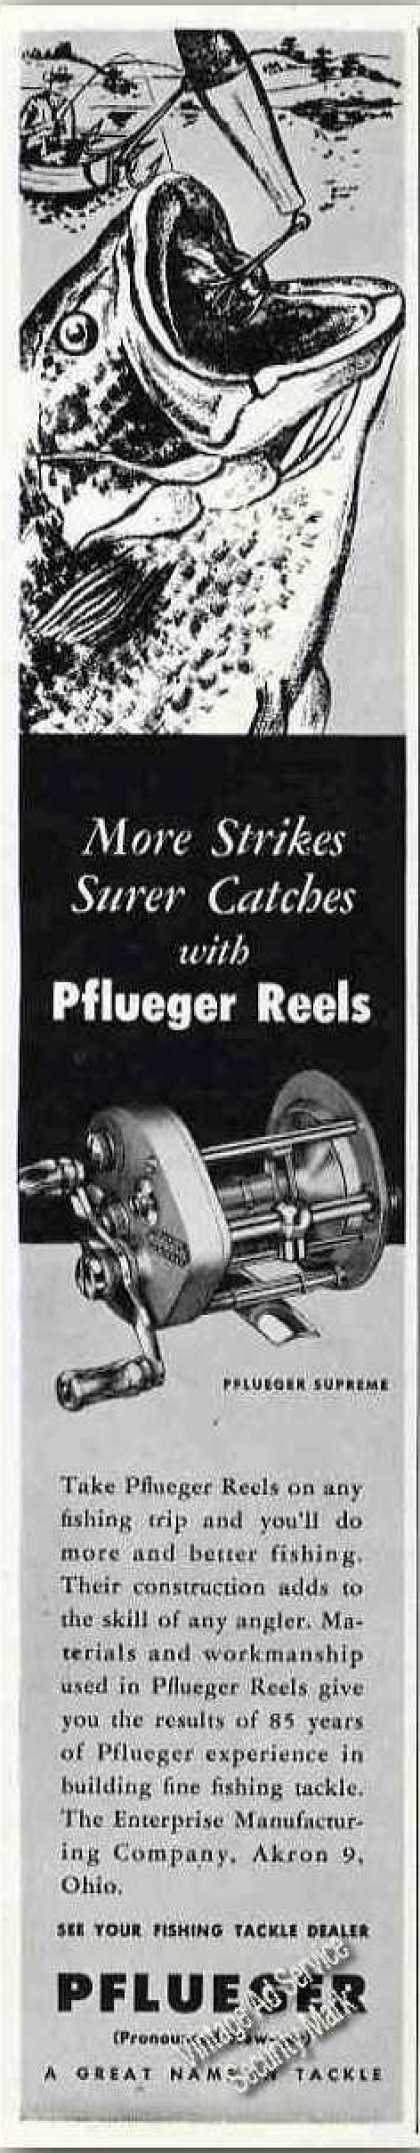 "Pflueger Reels ""More Strikes Surer Catches"" (1949)"